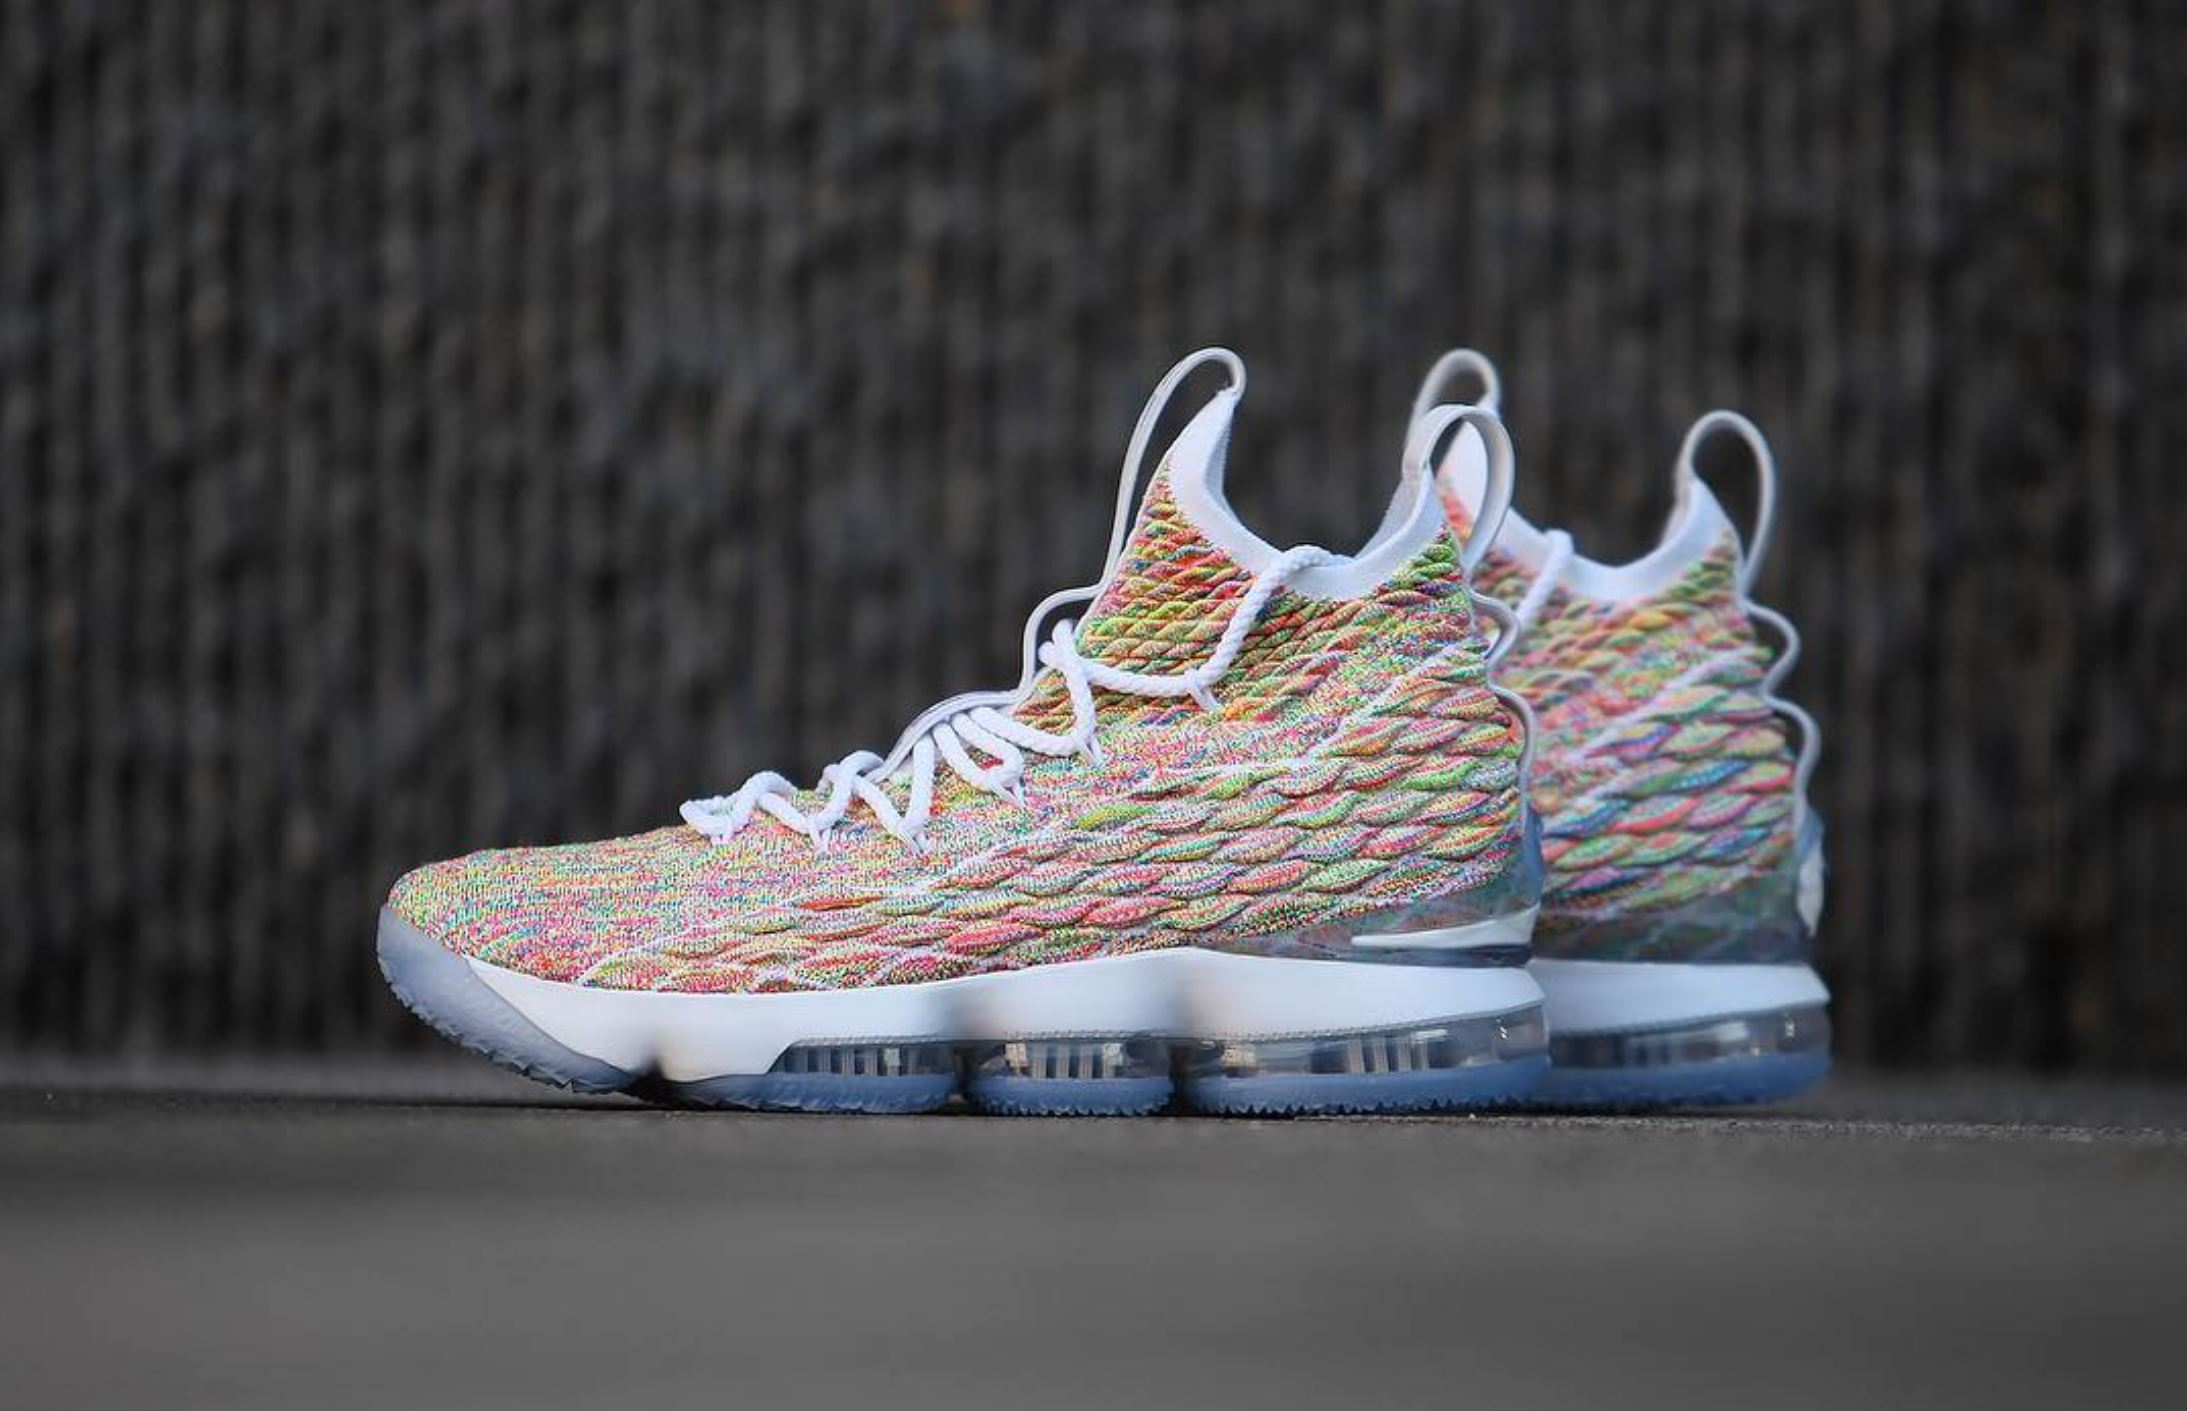 8c853afe9f3 Here's a Detailed Look at the Nike LeBron 15 'Fruity Pebbles ...